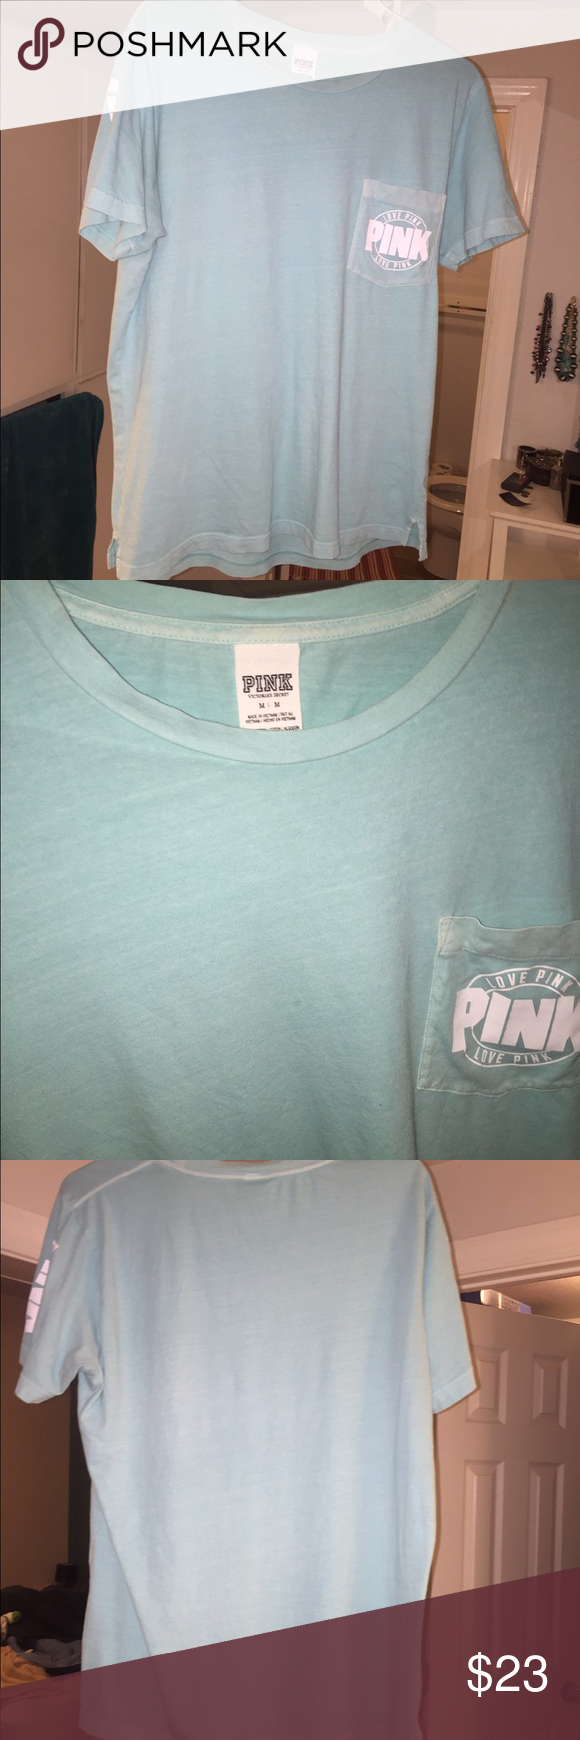 Turquoise VS M campus shirt Like new only worn 3 times, no stains or flaws. PINK Victoria's Secret Tops Tees - Short Sleeve